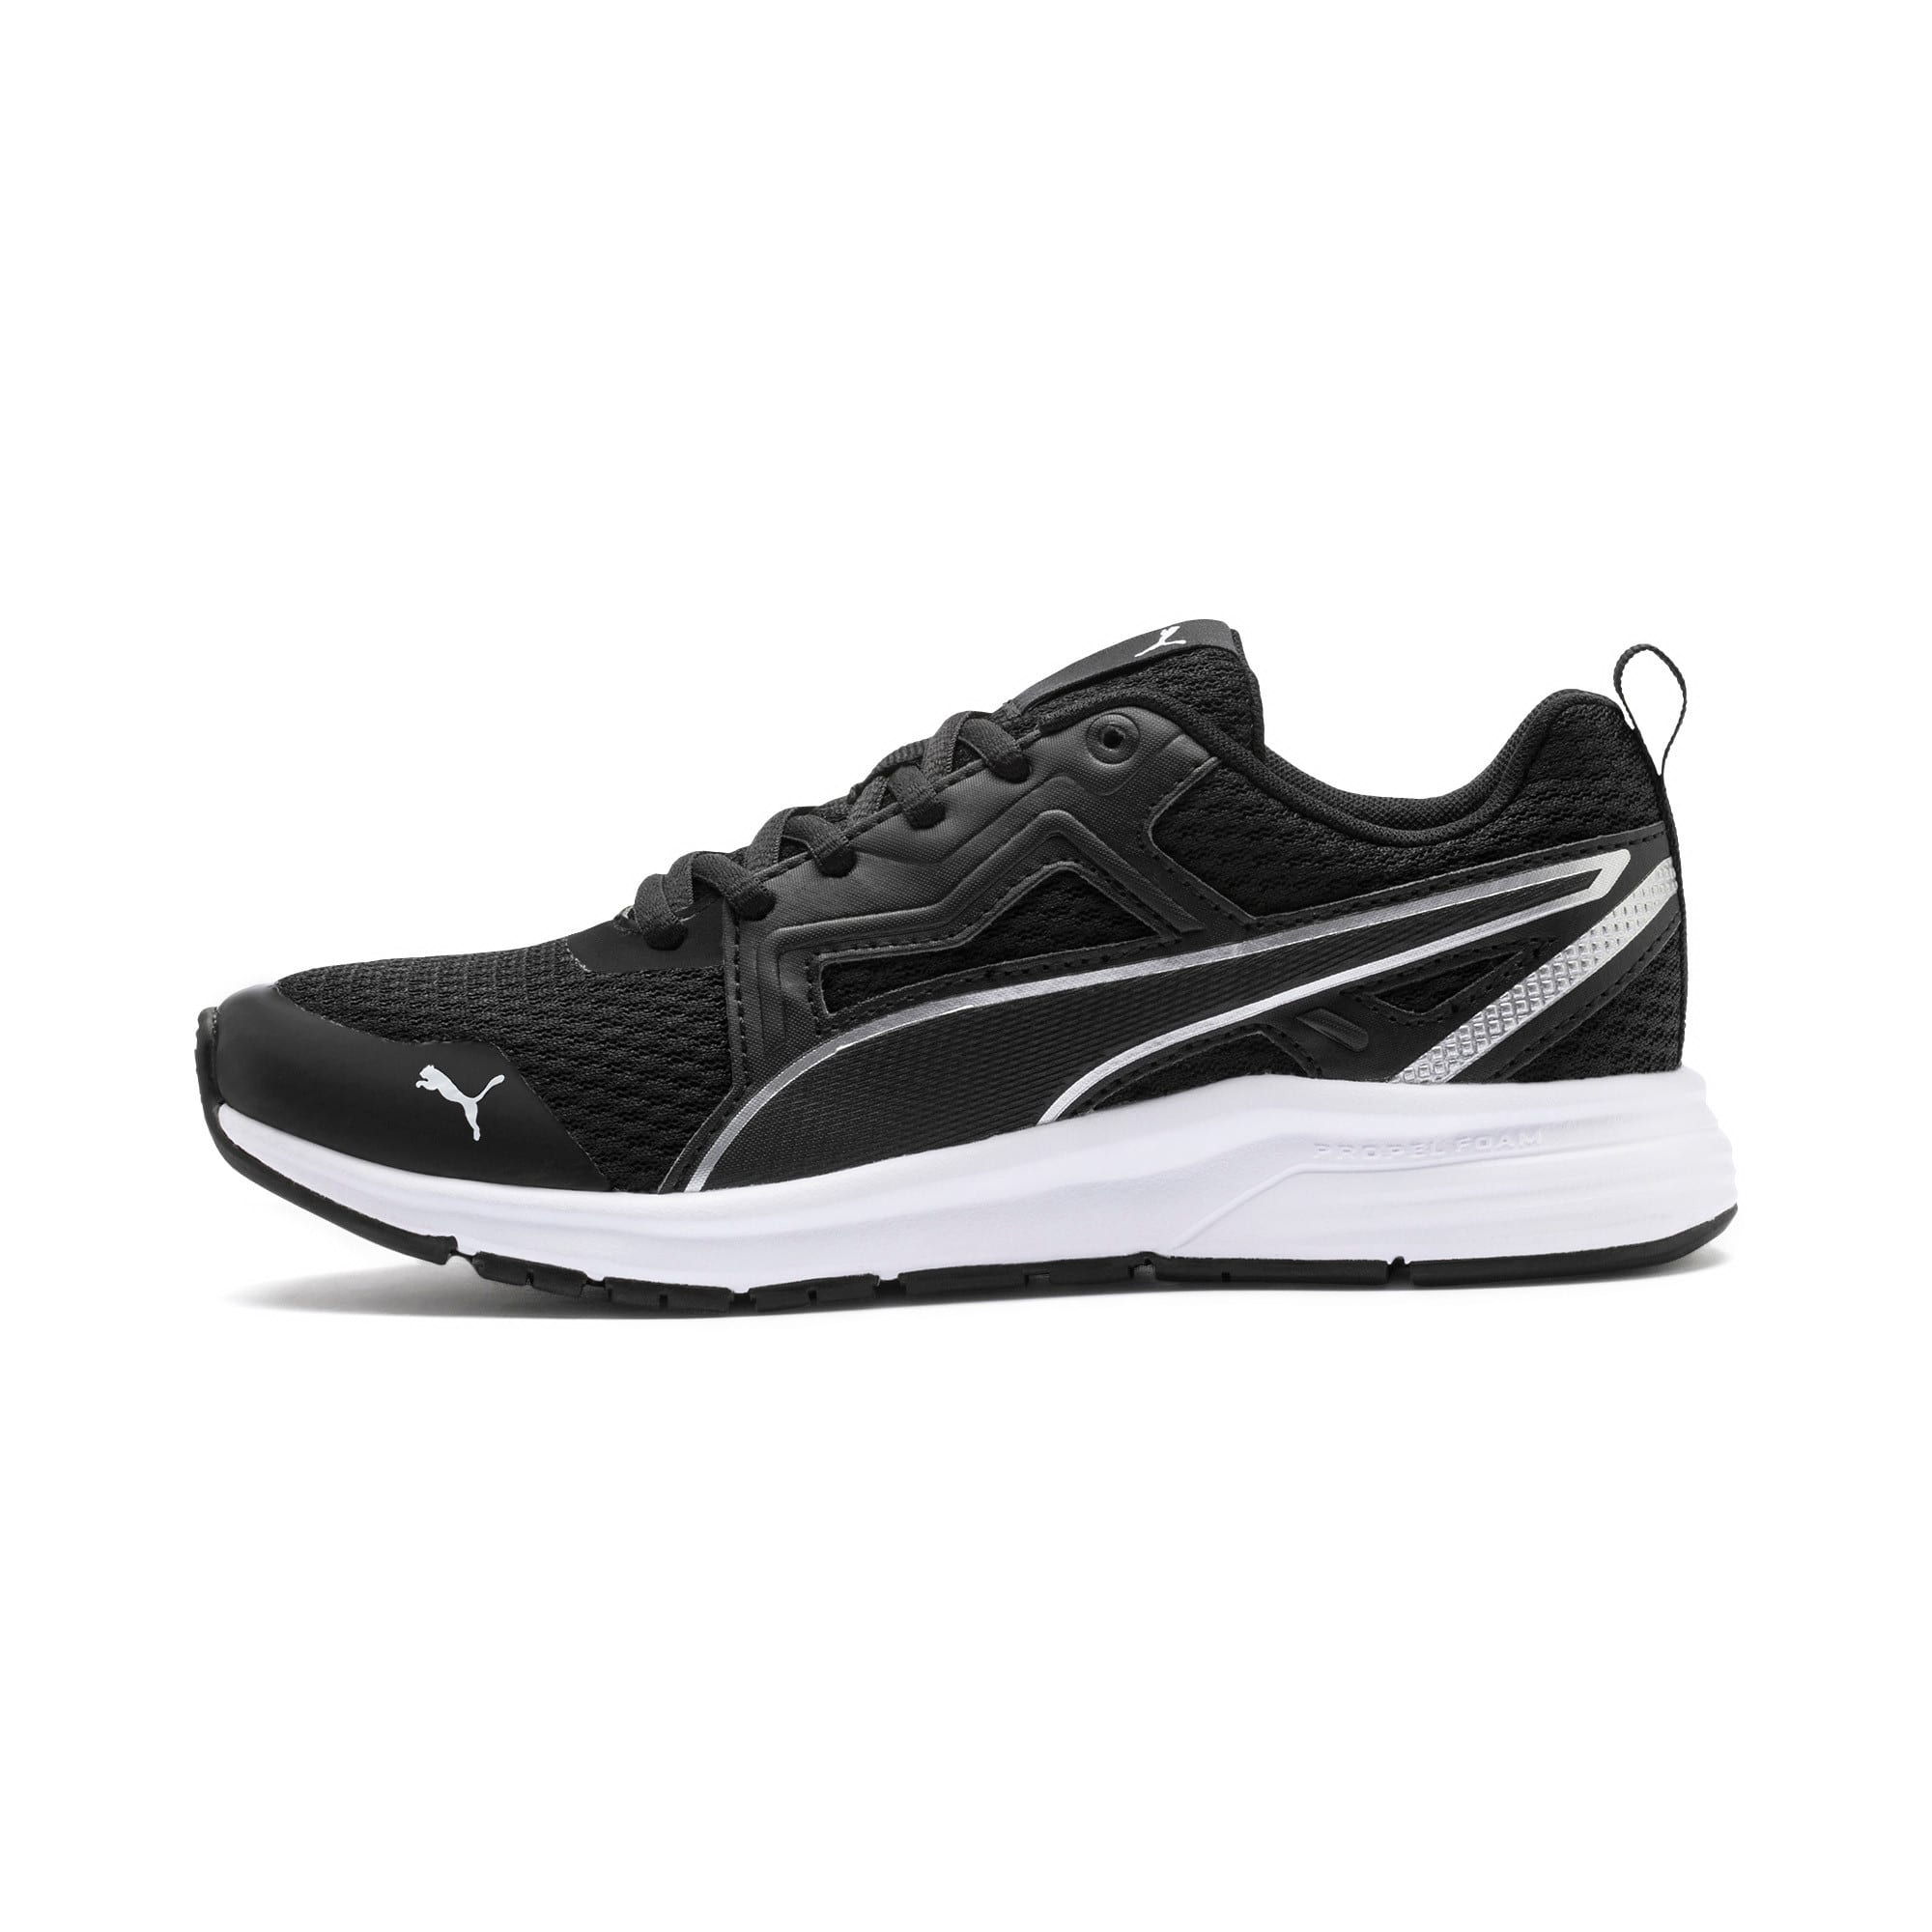 Thumbnail 1 of Pure Jogger Youth Trainers, Black-Silver-Wht-Nrgy Yellow, medium